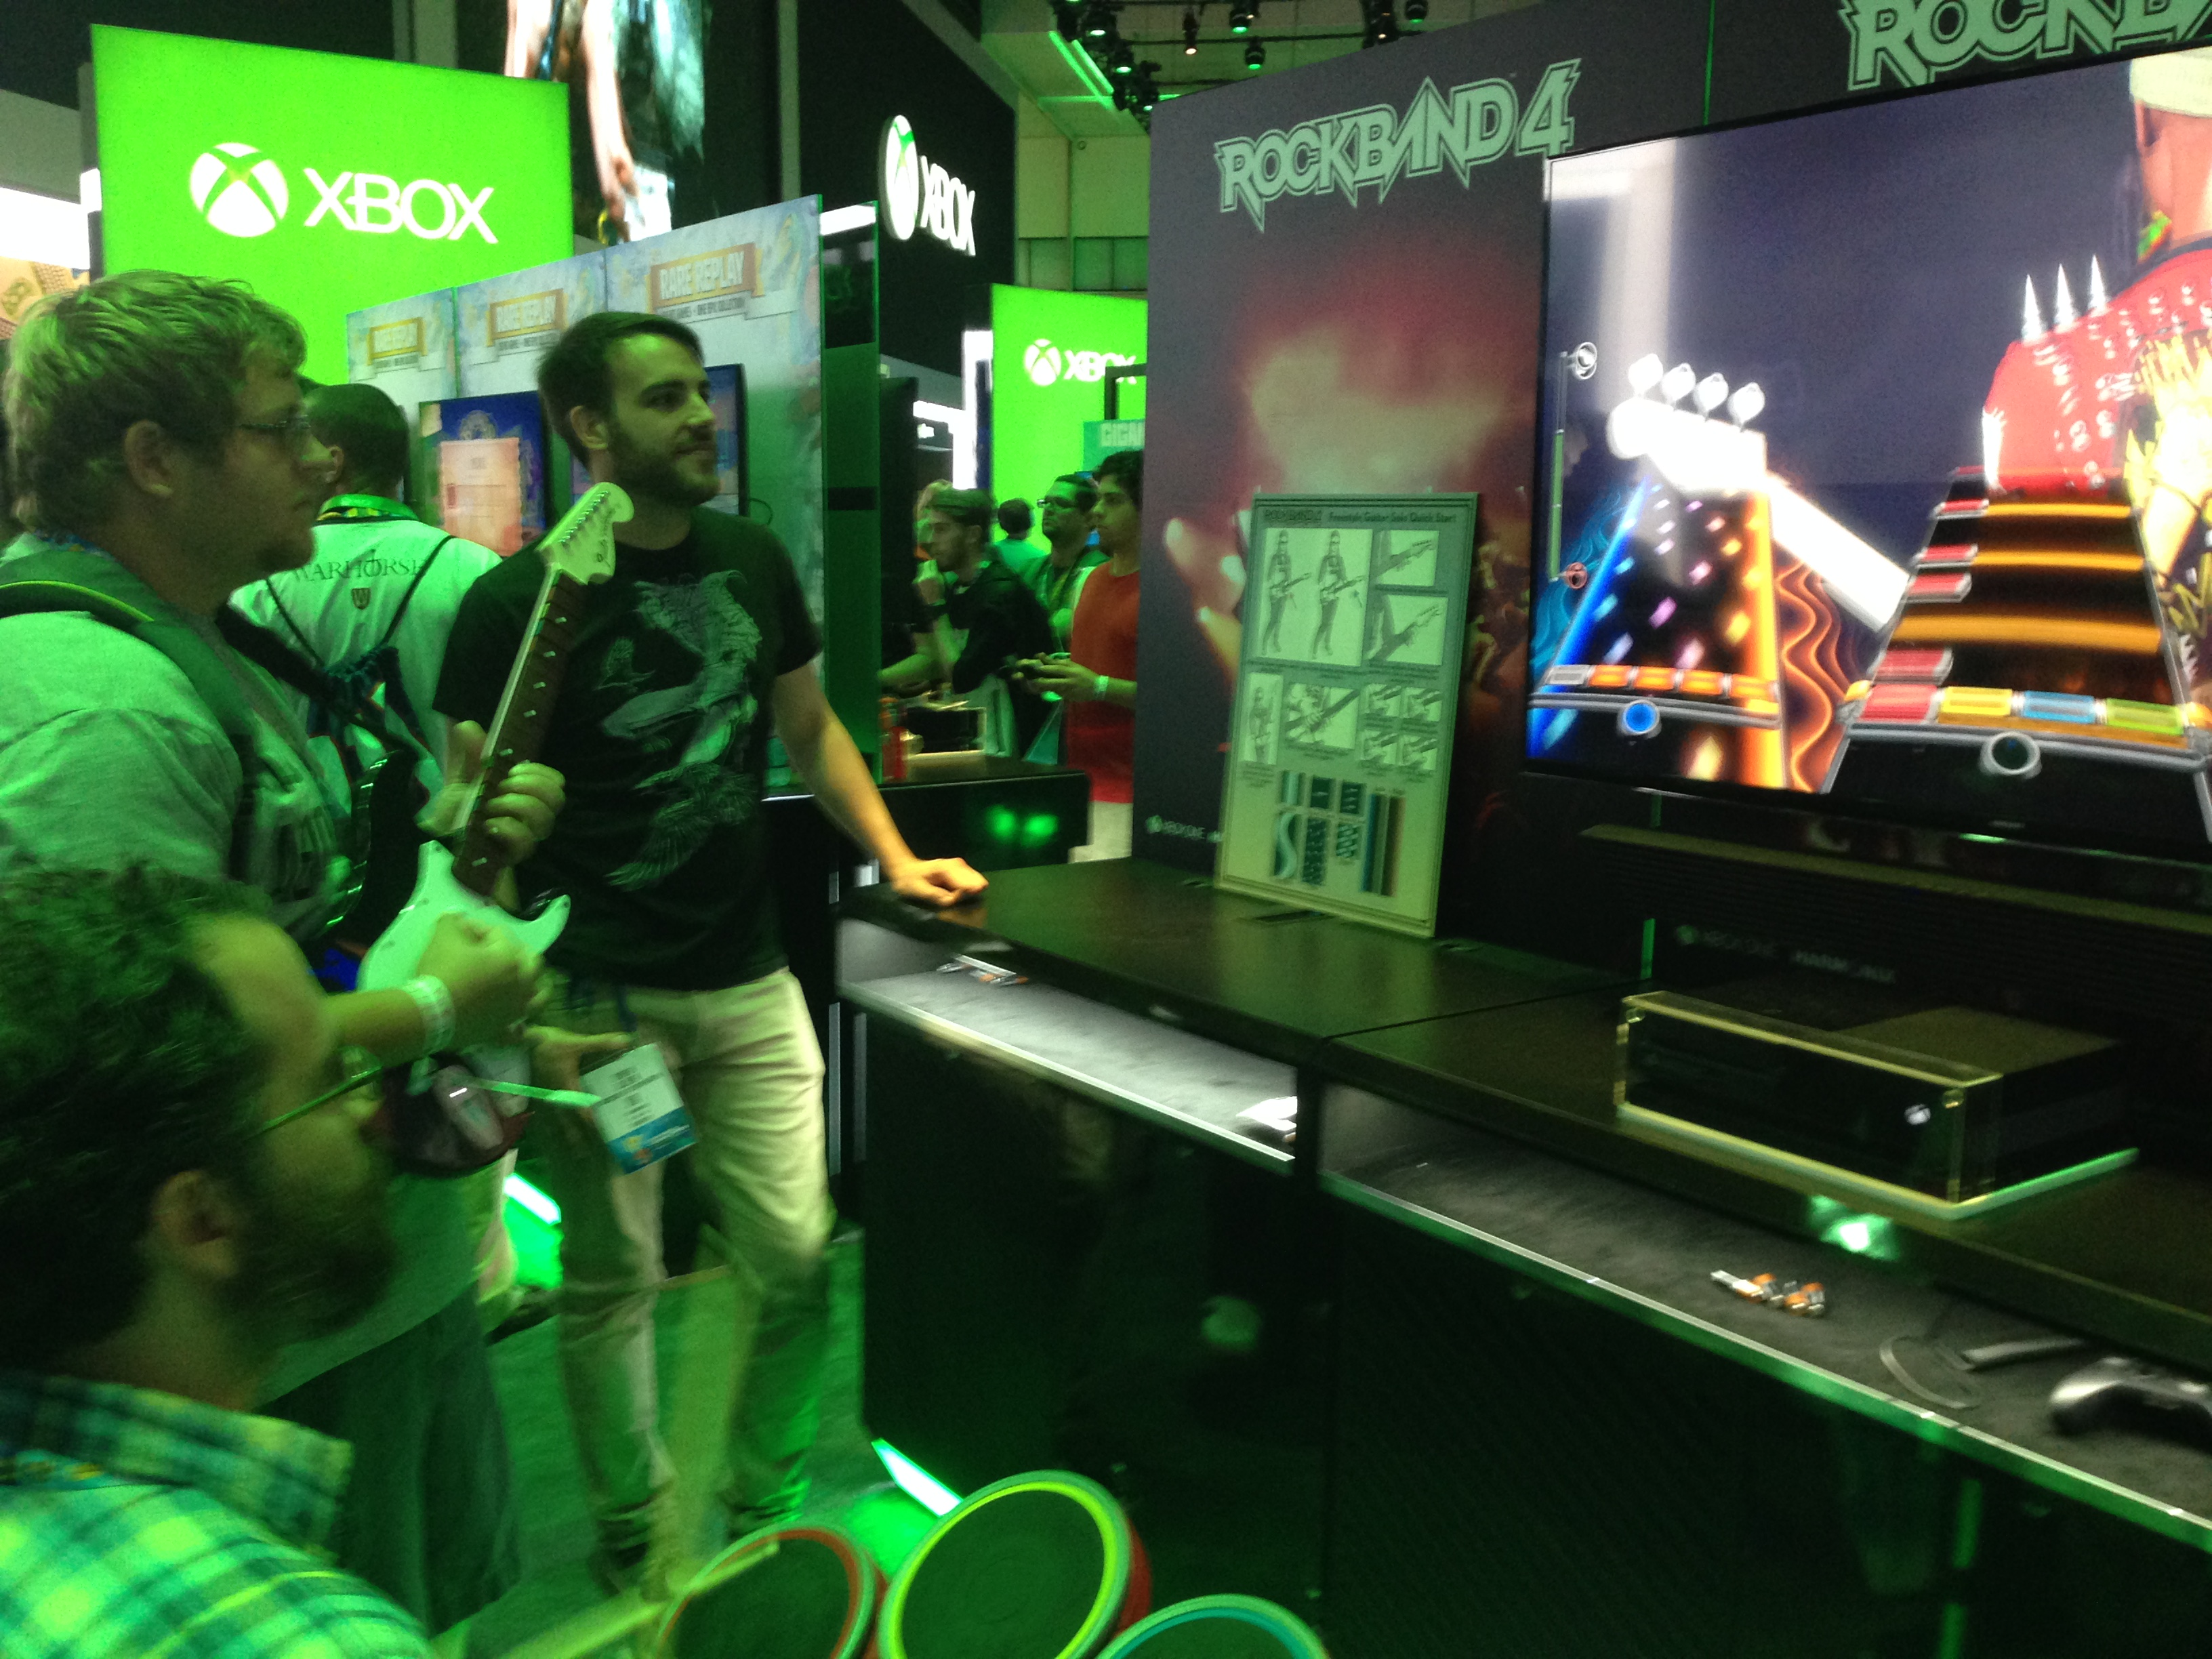 Freestyle Guitar Solo in the Xbox booth